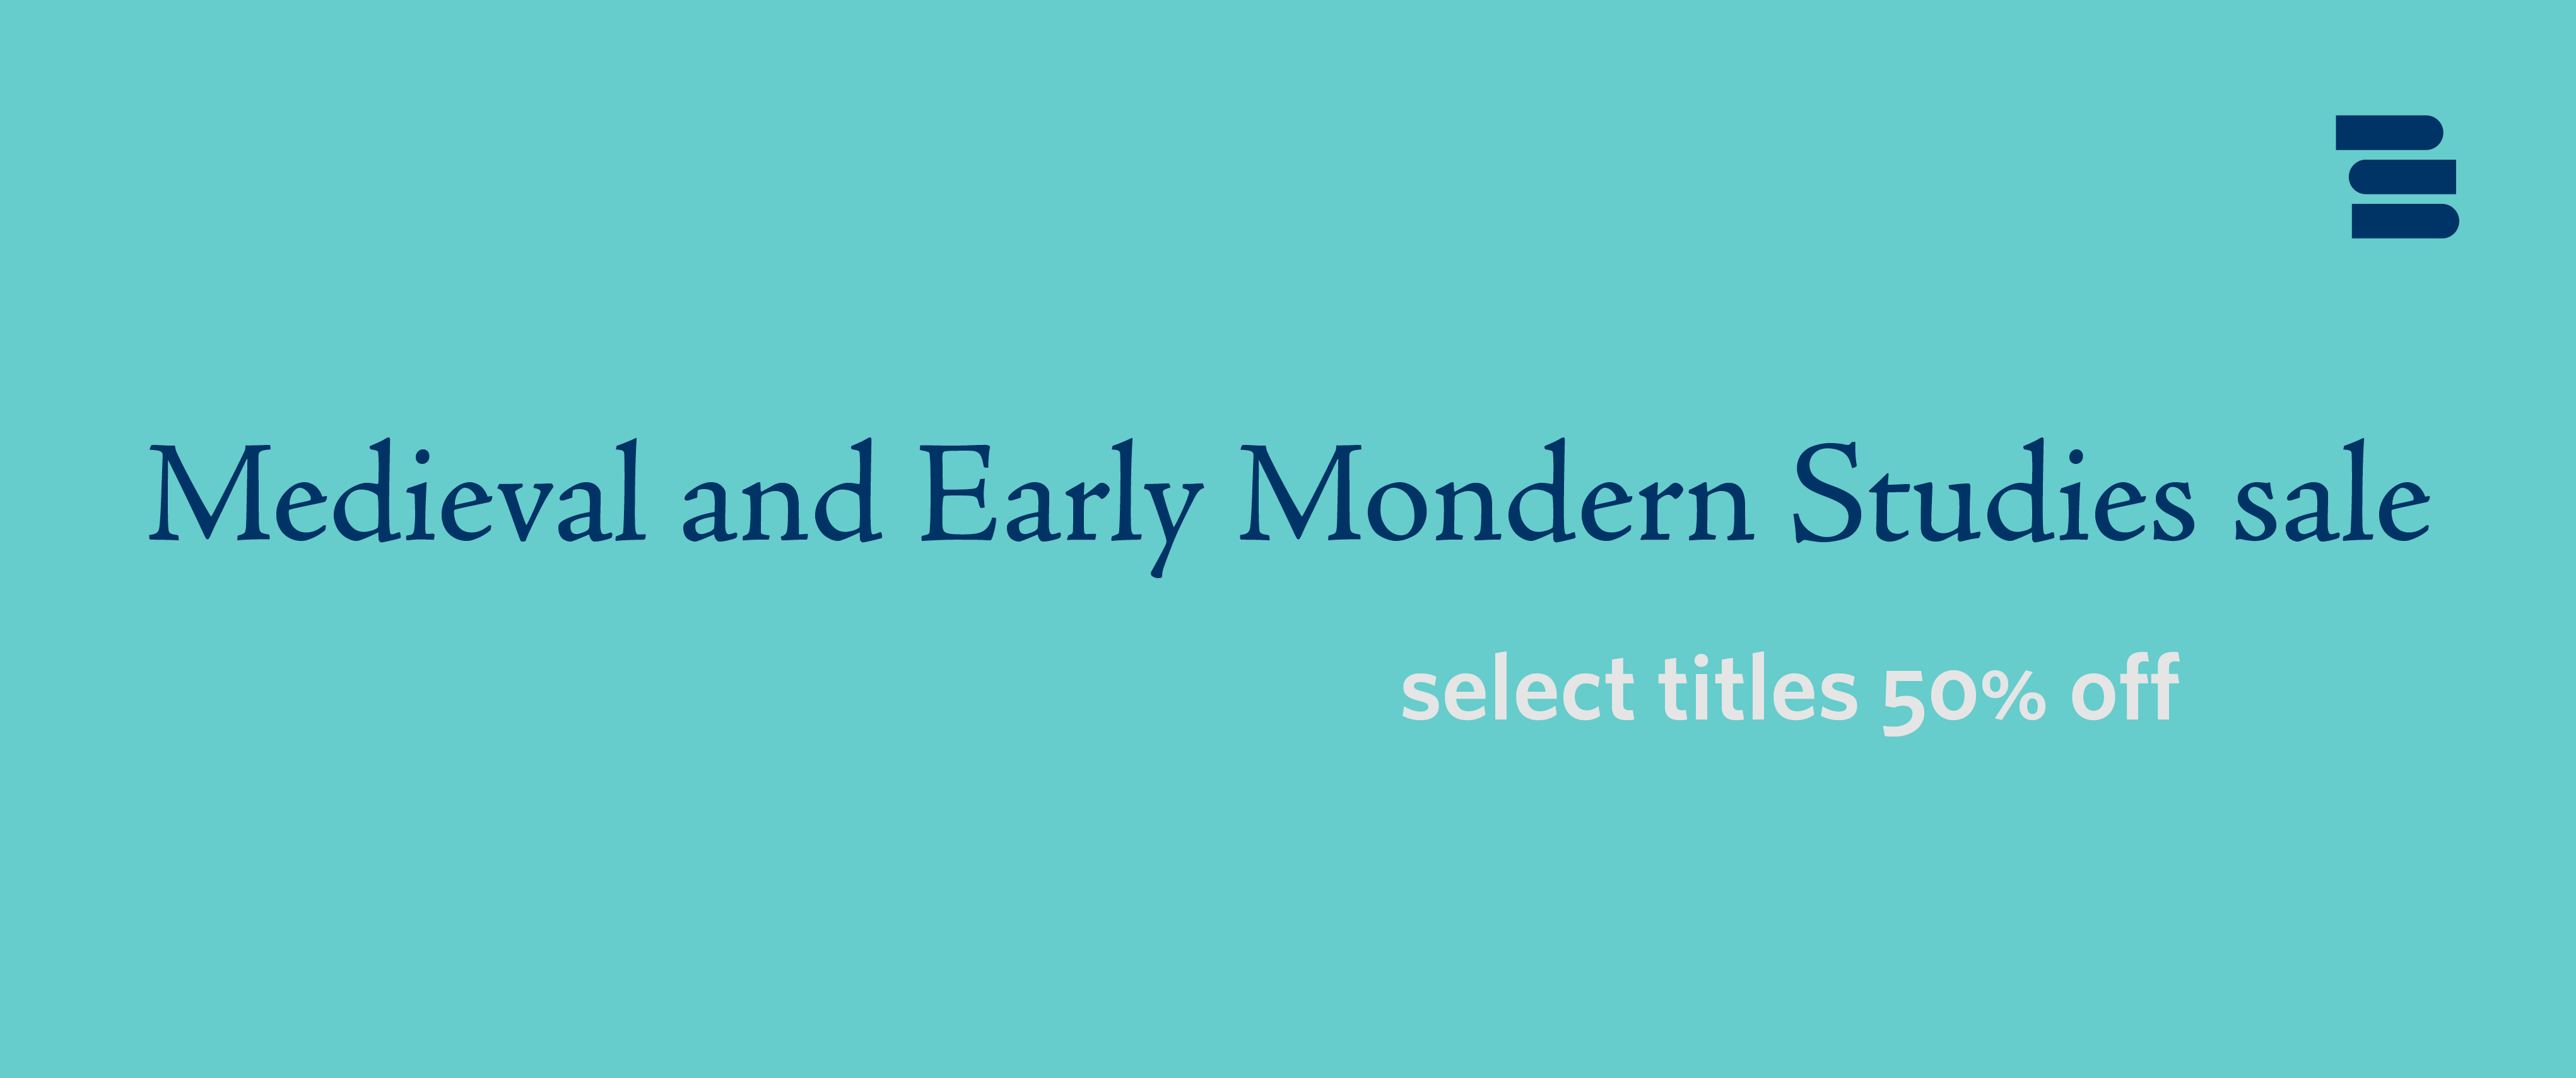 Medieval and Early Modern Studies sale banner